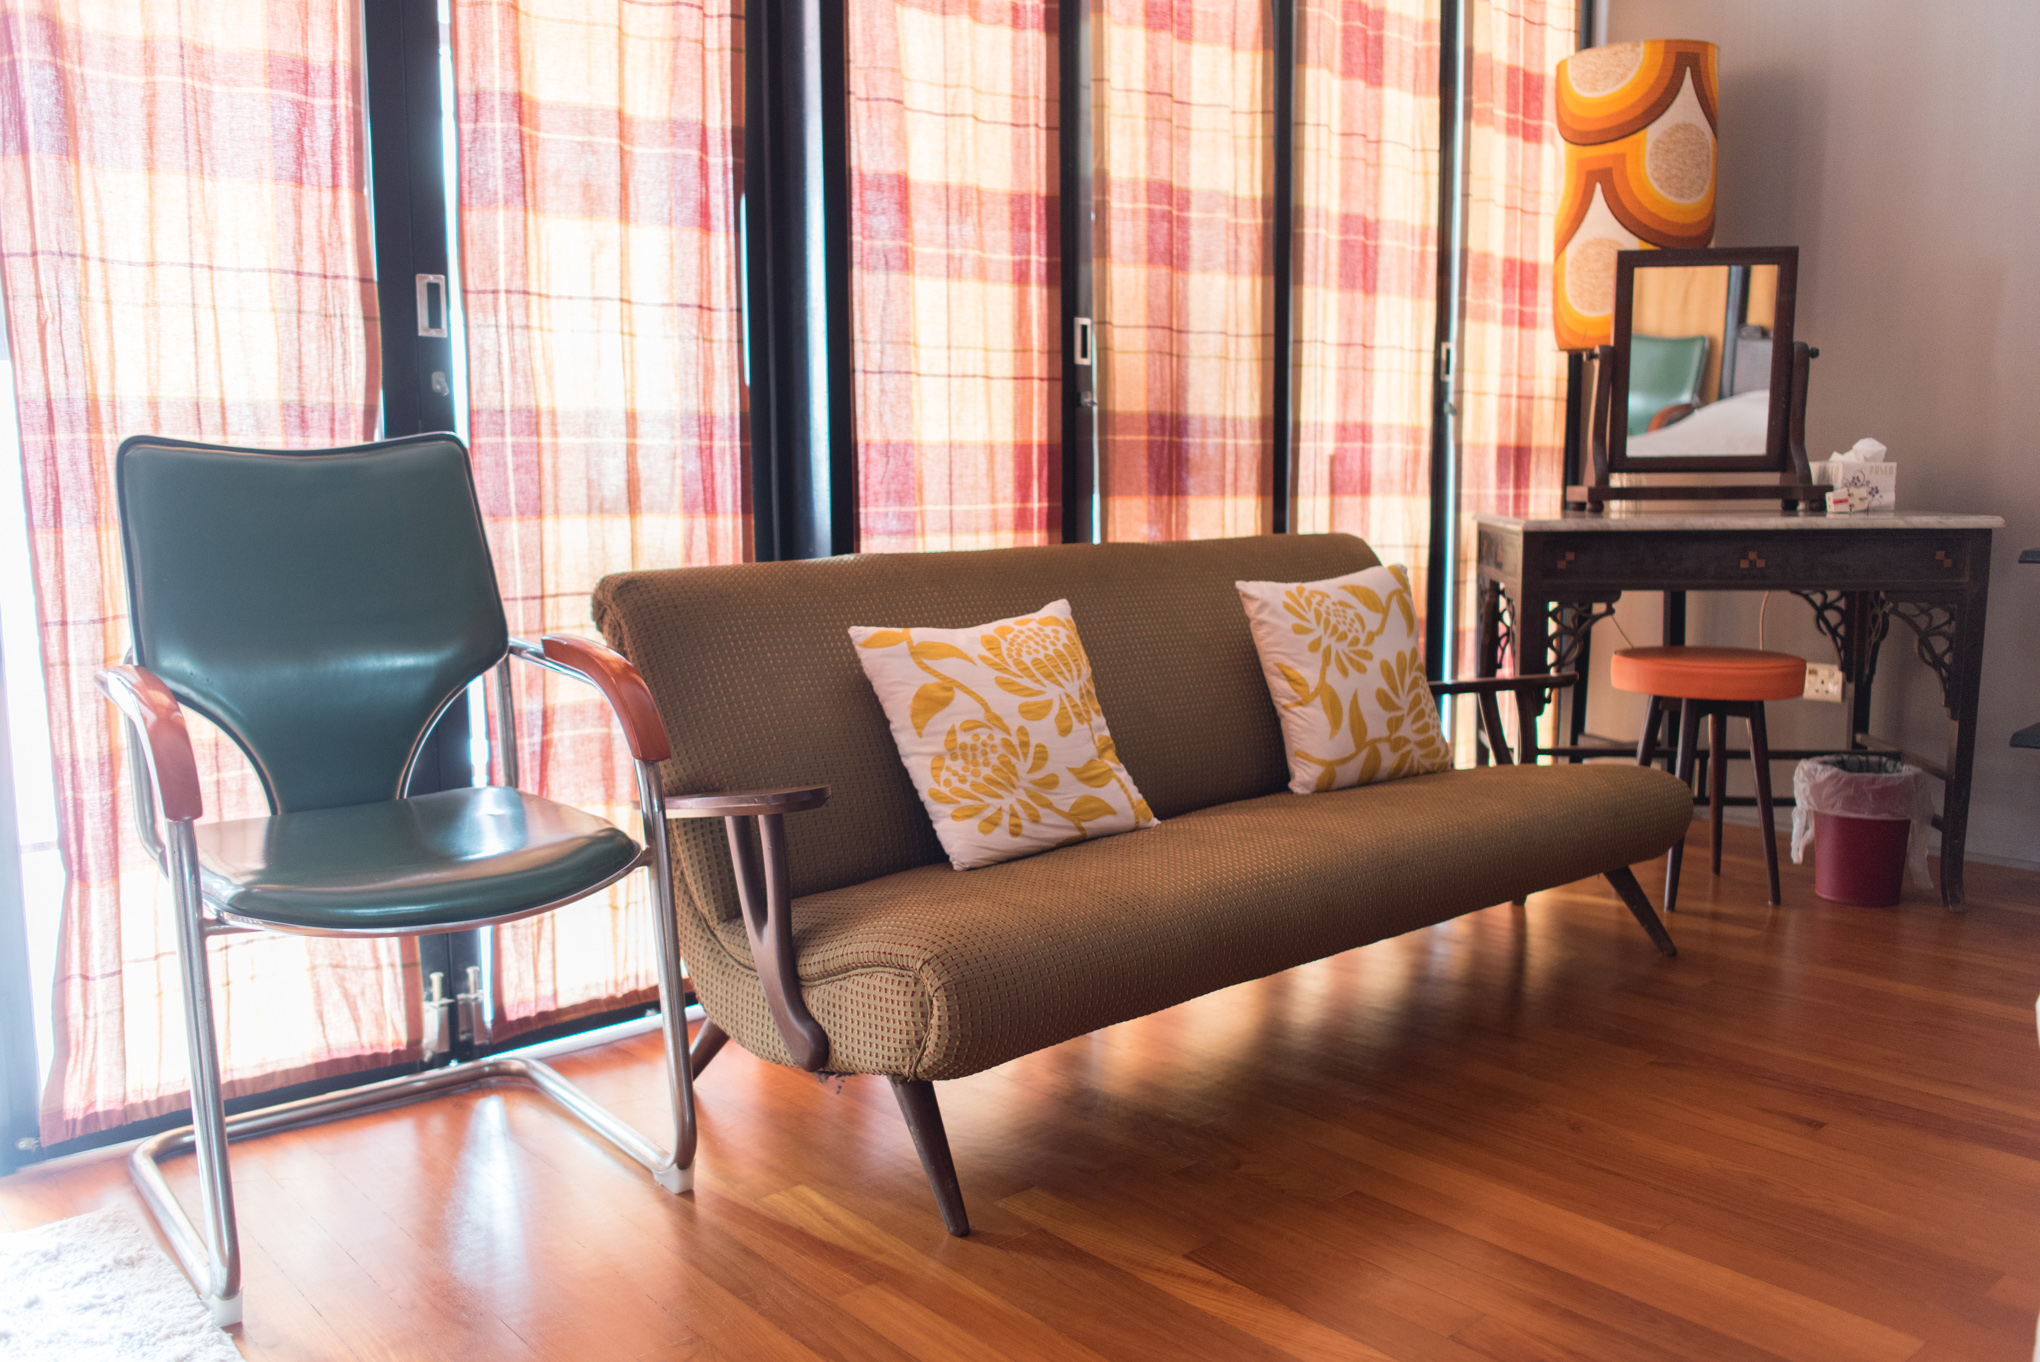 Pictured above: Original solid wood 1970s vintage furniture. Kheng Hua adopted these from her grandmother, and had them stylishly reupholstered.